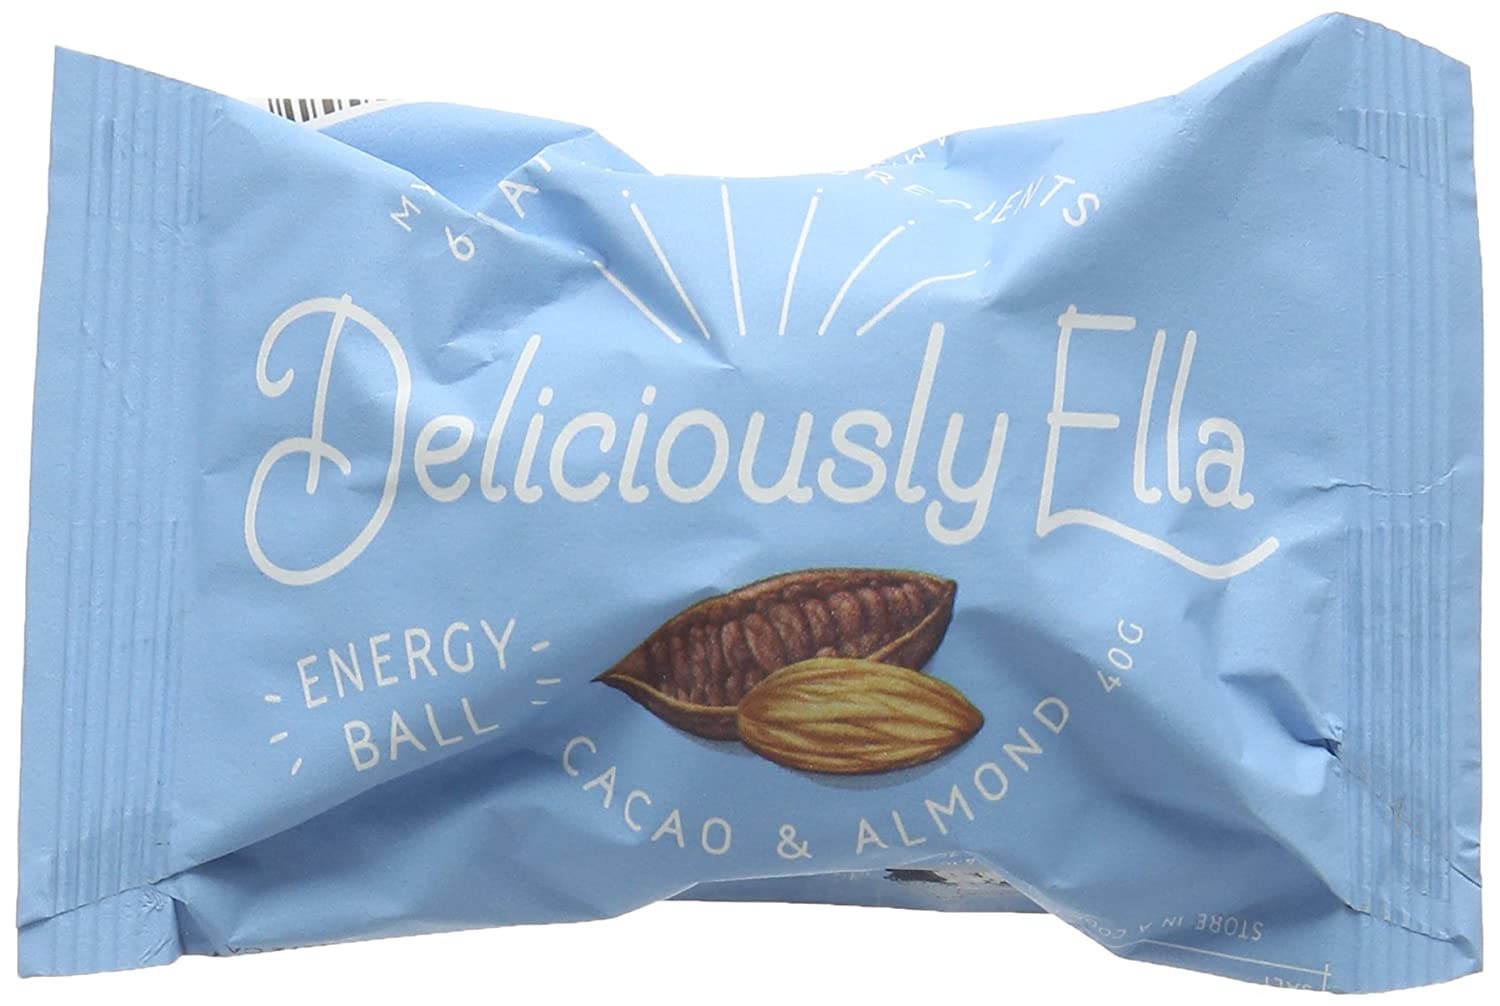 Deliciously Ella Cacao and Almond Energy Ball 40 g - Case of 12